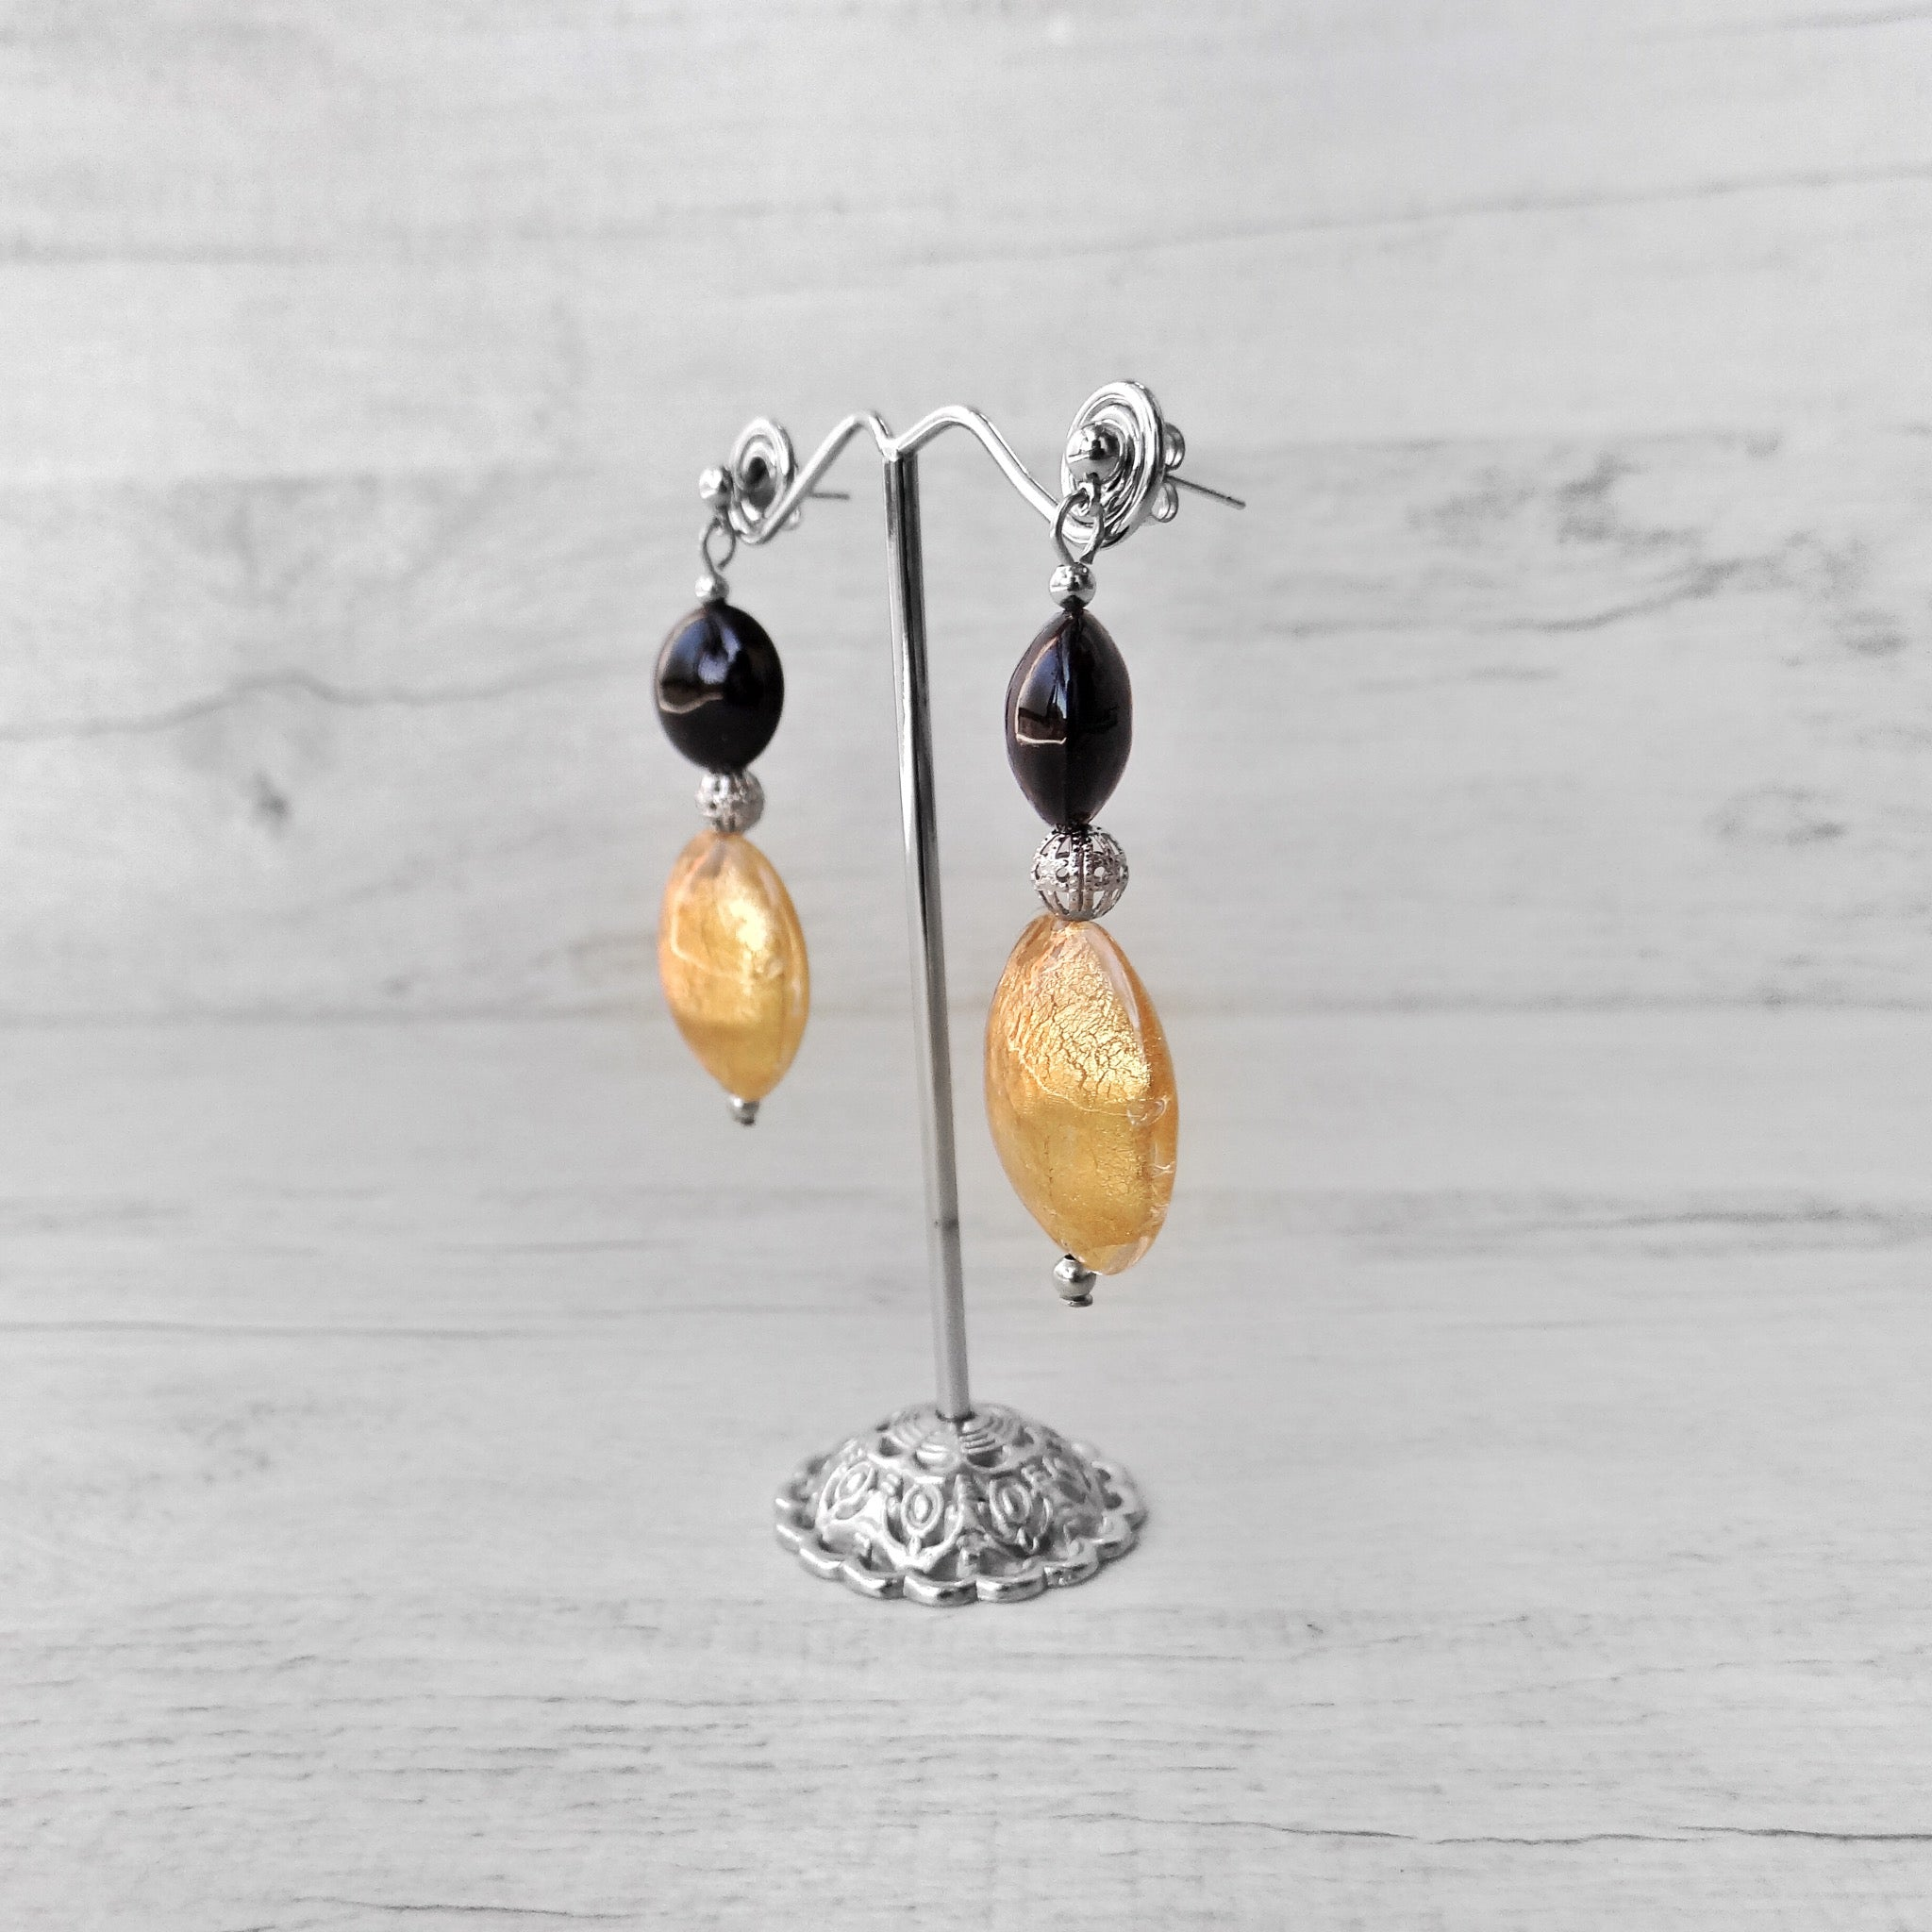 Medàgie - Gold Murano Glass Earrings